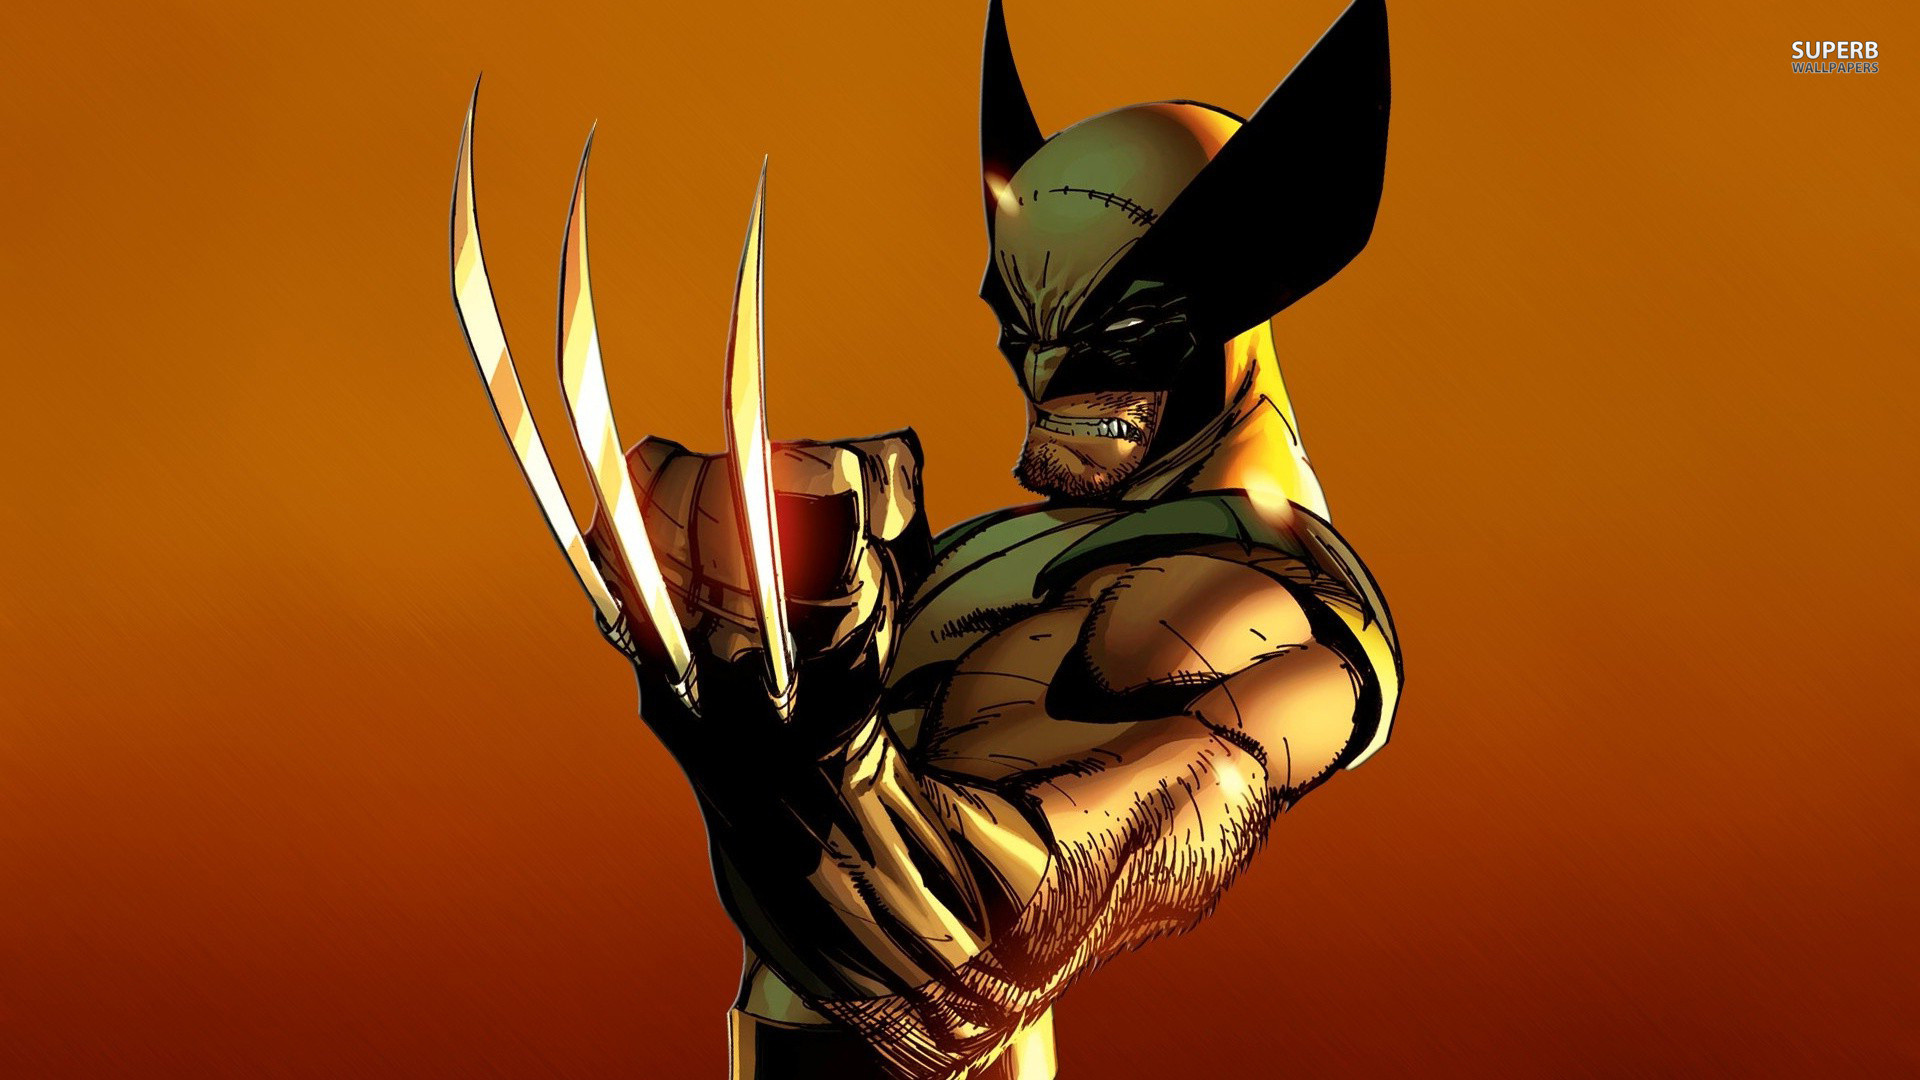 Res: 1920x1080, Wolverine Wallpapers 19 - 1920 X 1080